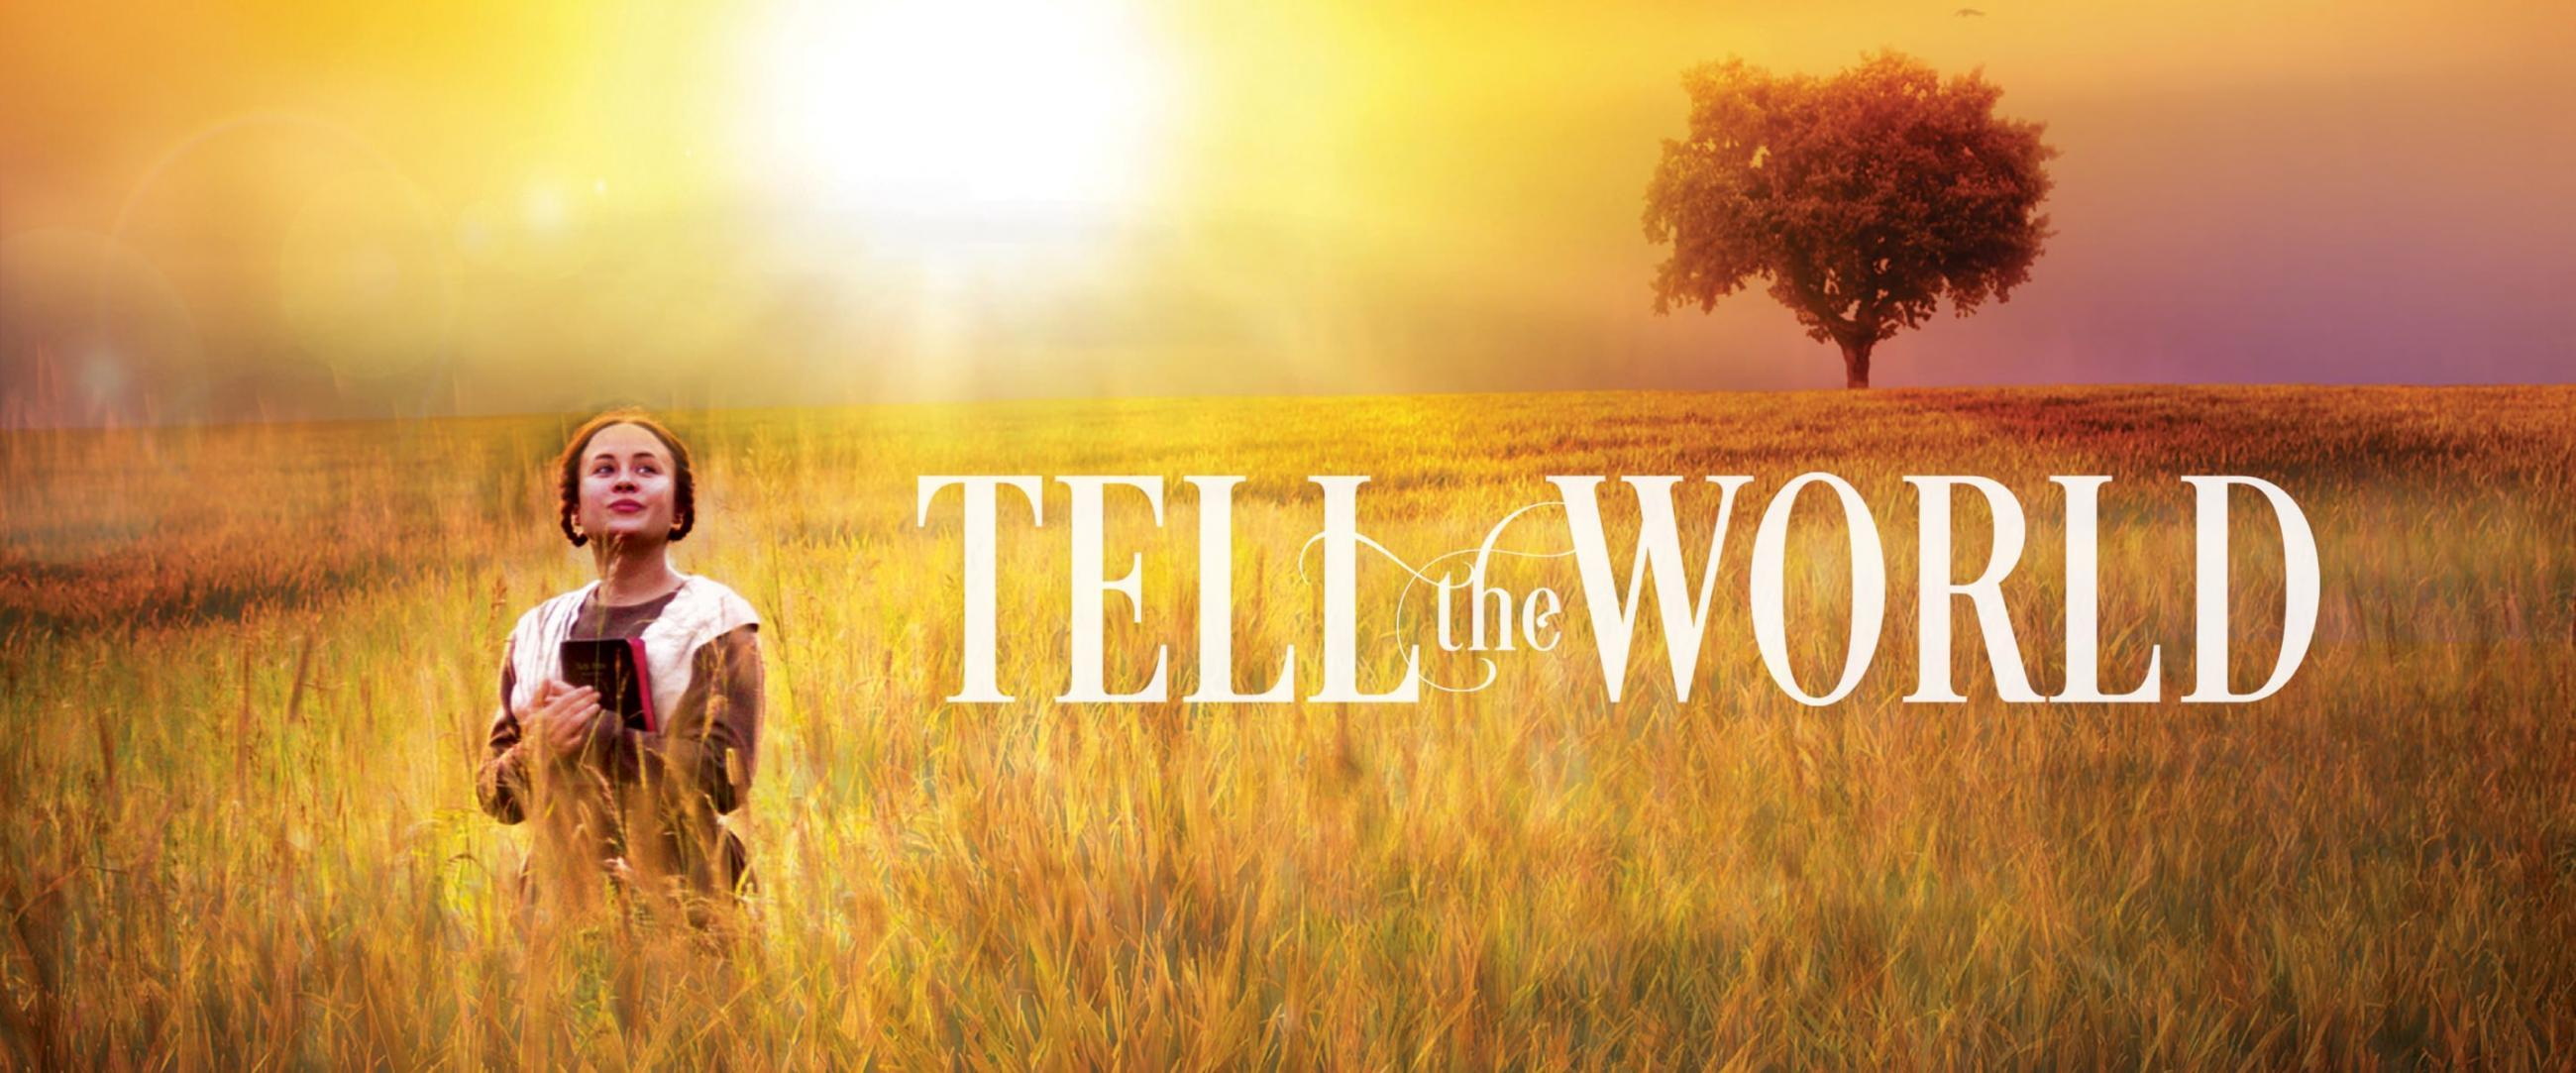 Tell the world Homepage